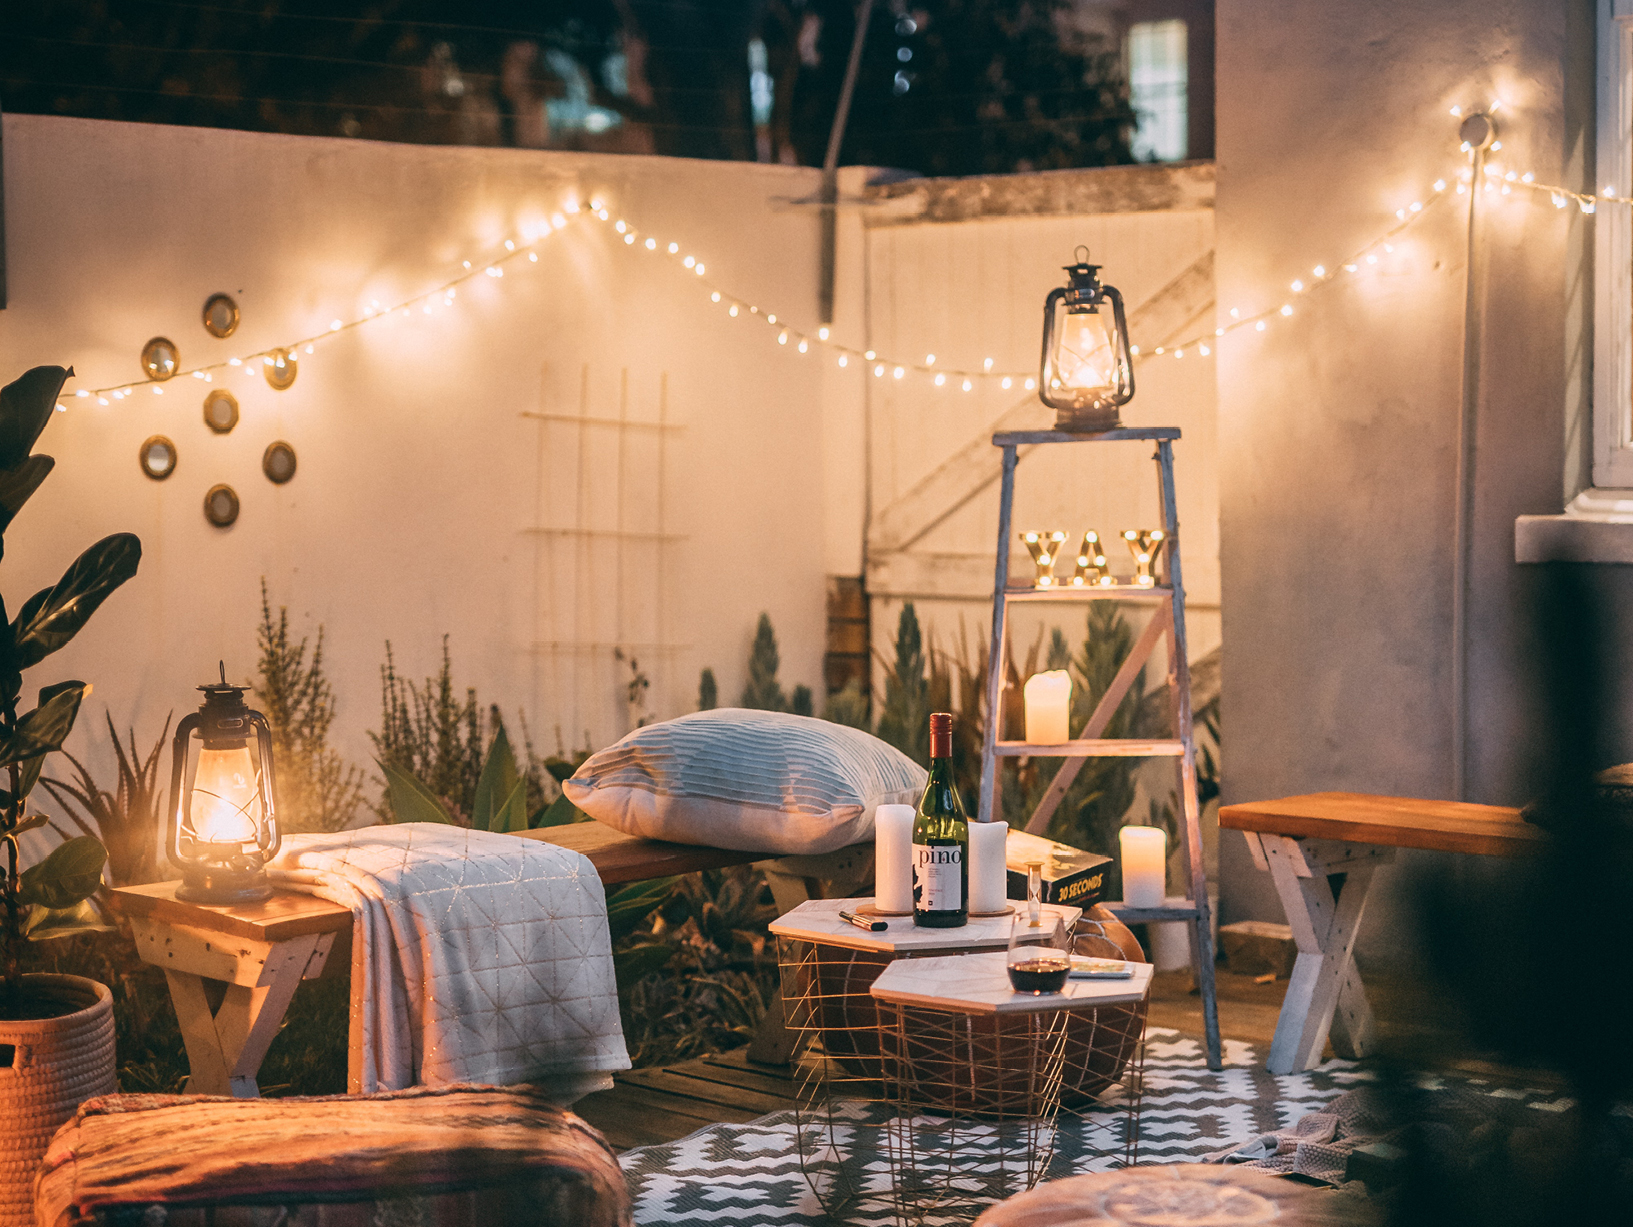 backyard space with lights and fence